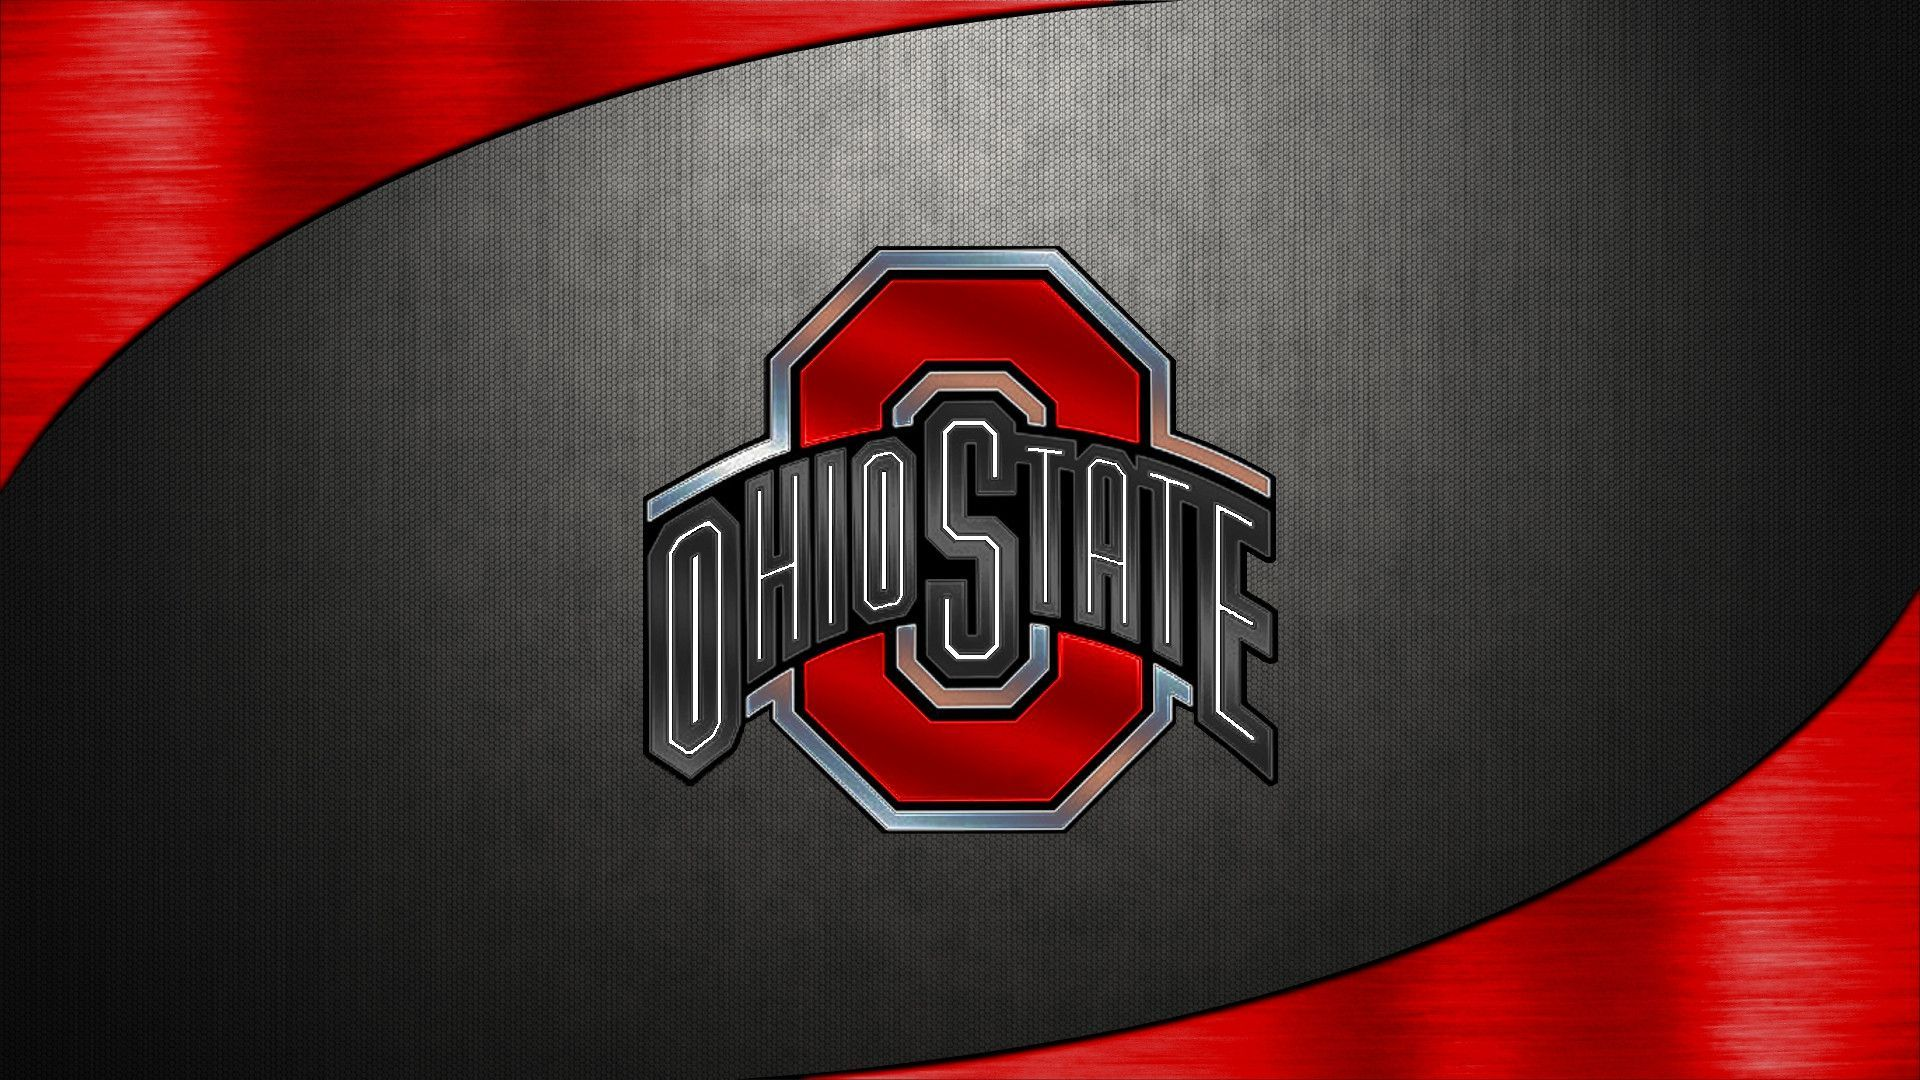 Ohio St Wallpaper